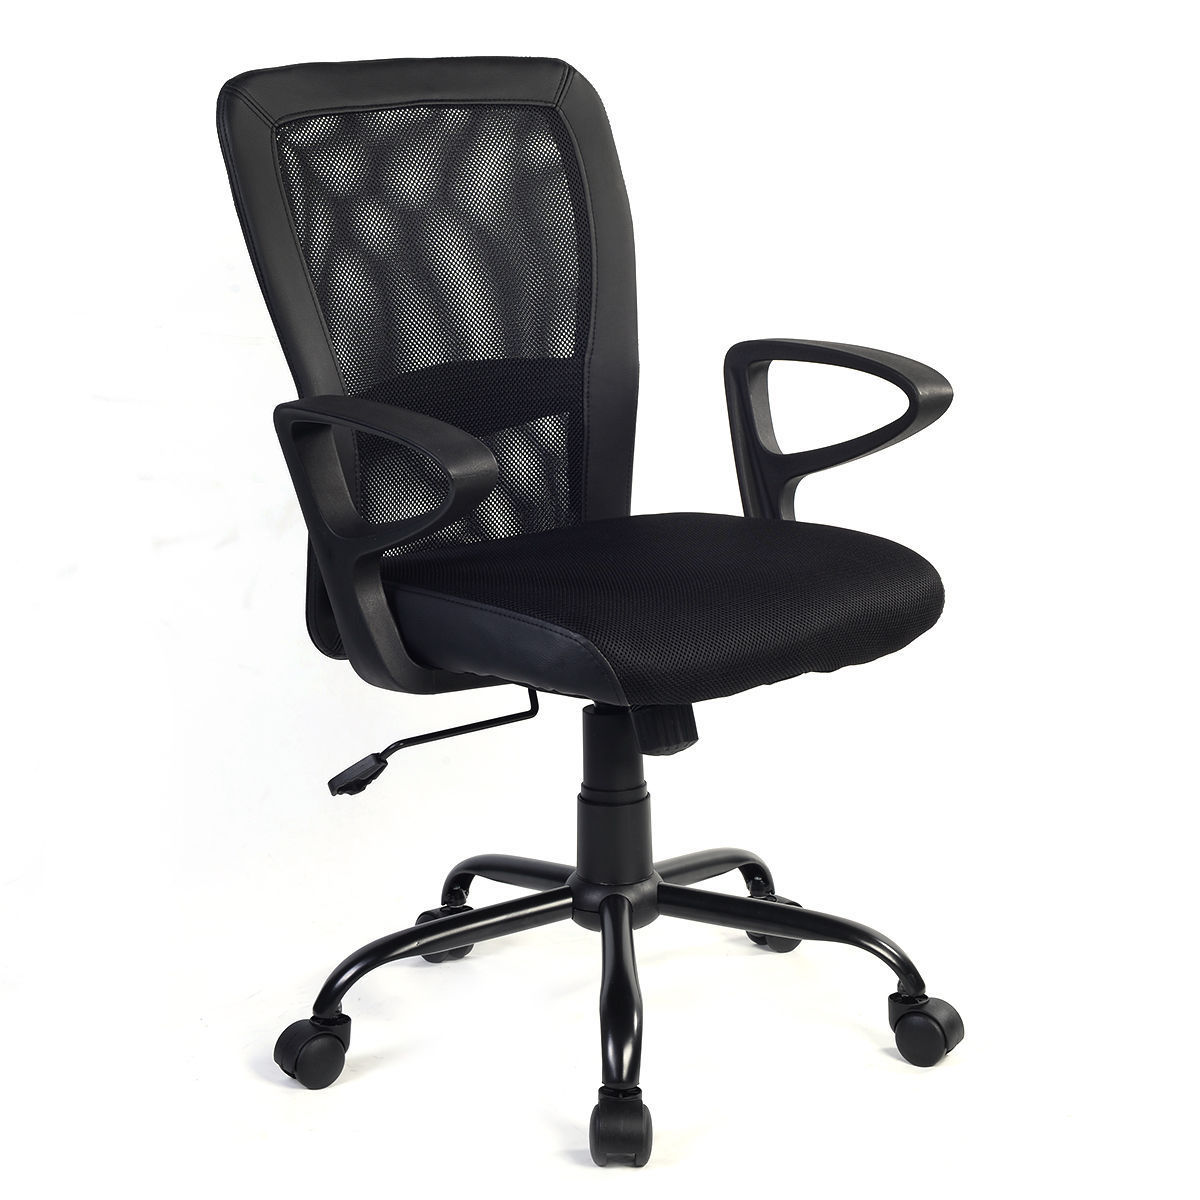 Giantex Modern Ergonomic Mesh Medium Back Office Chair Swivel Executive Computer Desk Task Chairs Office Furniture HW56131 1pcs 71805 71805cd p4 7805 25x37x7 mochu thin walled miniature angular contact bearings speed spindle bearings cnc abec 7